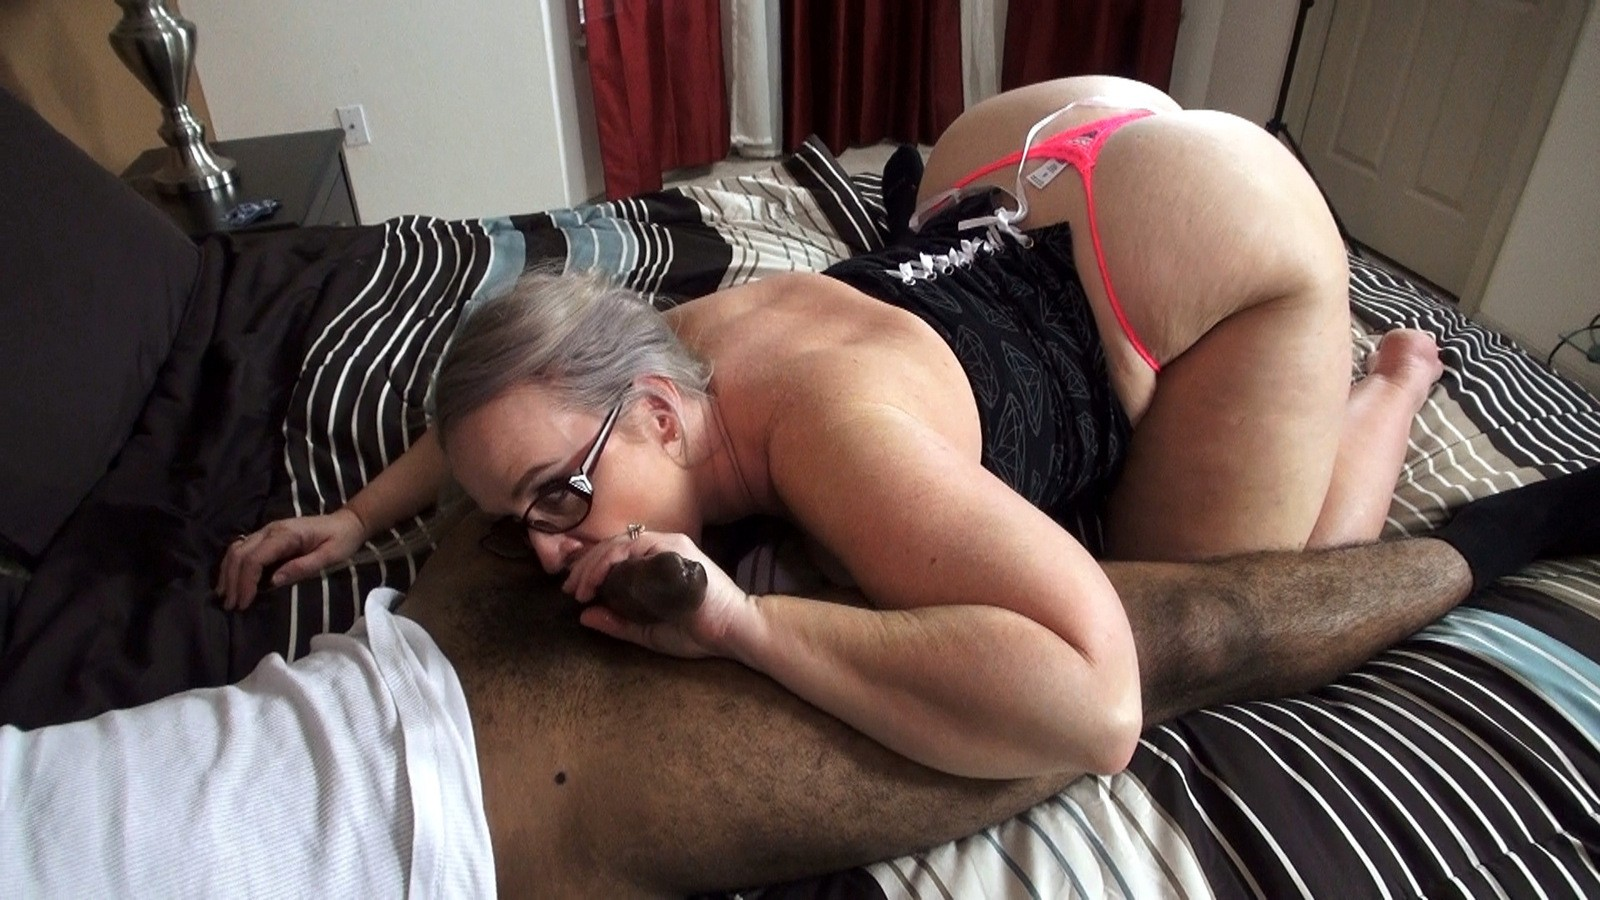 A bbc for hotwife dayna vendetta while cuckold watching 5